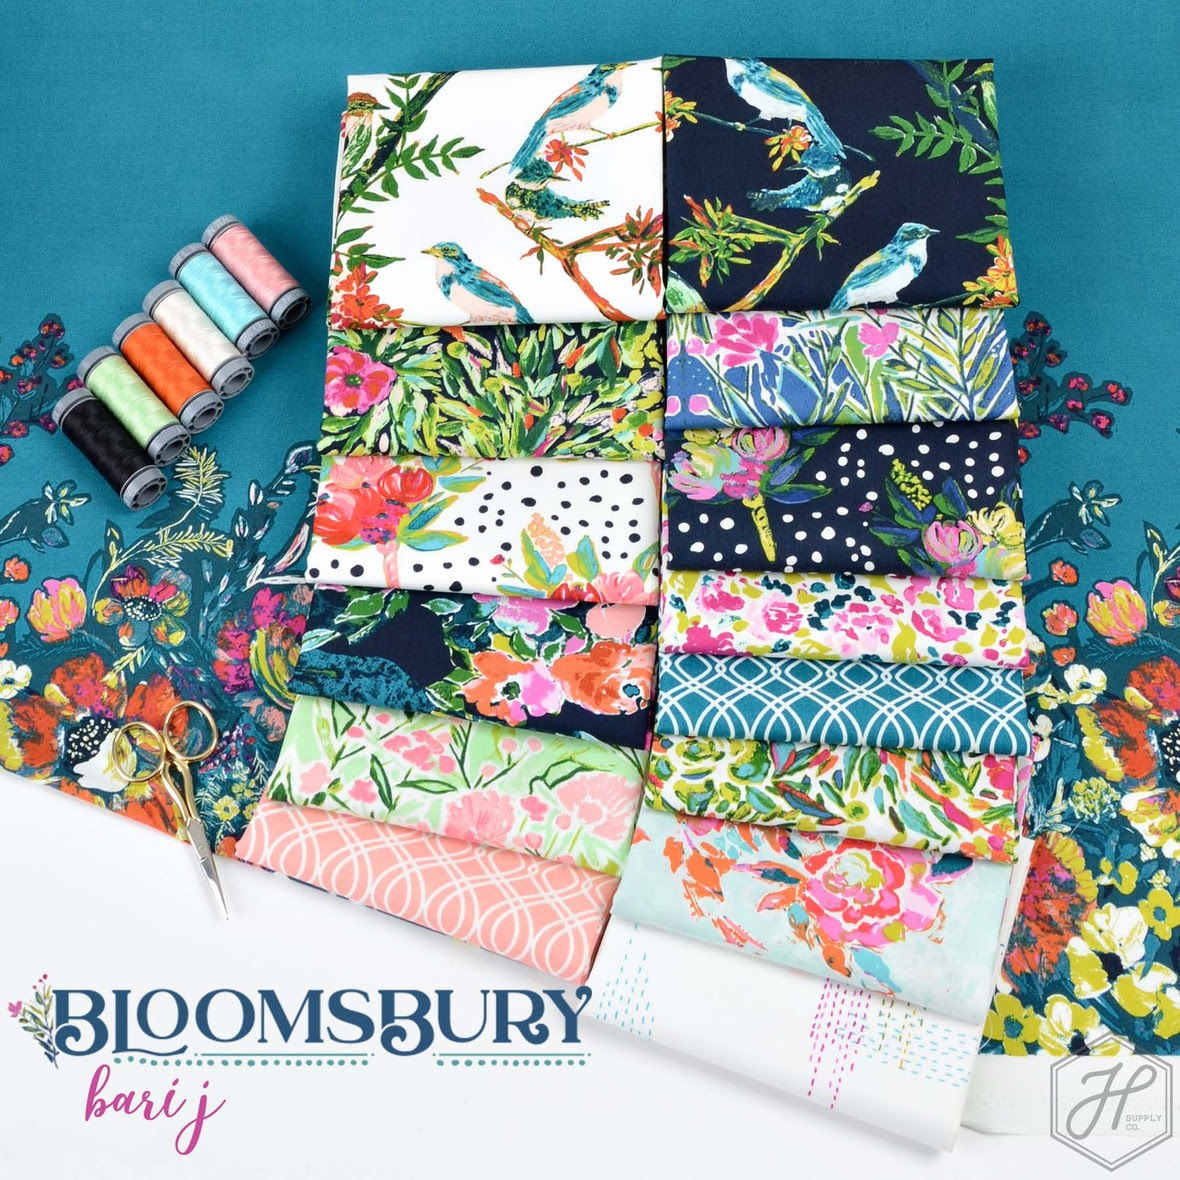 Bloomsbury Fabric Bari J for Art Gallery fabric at Hawthorne Supply Co